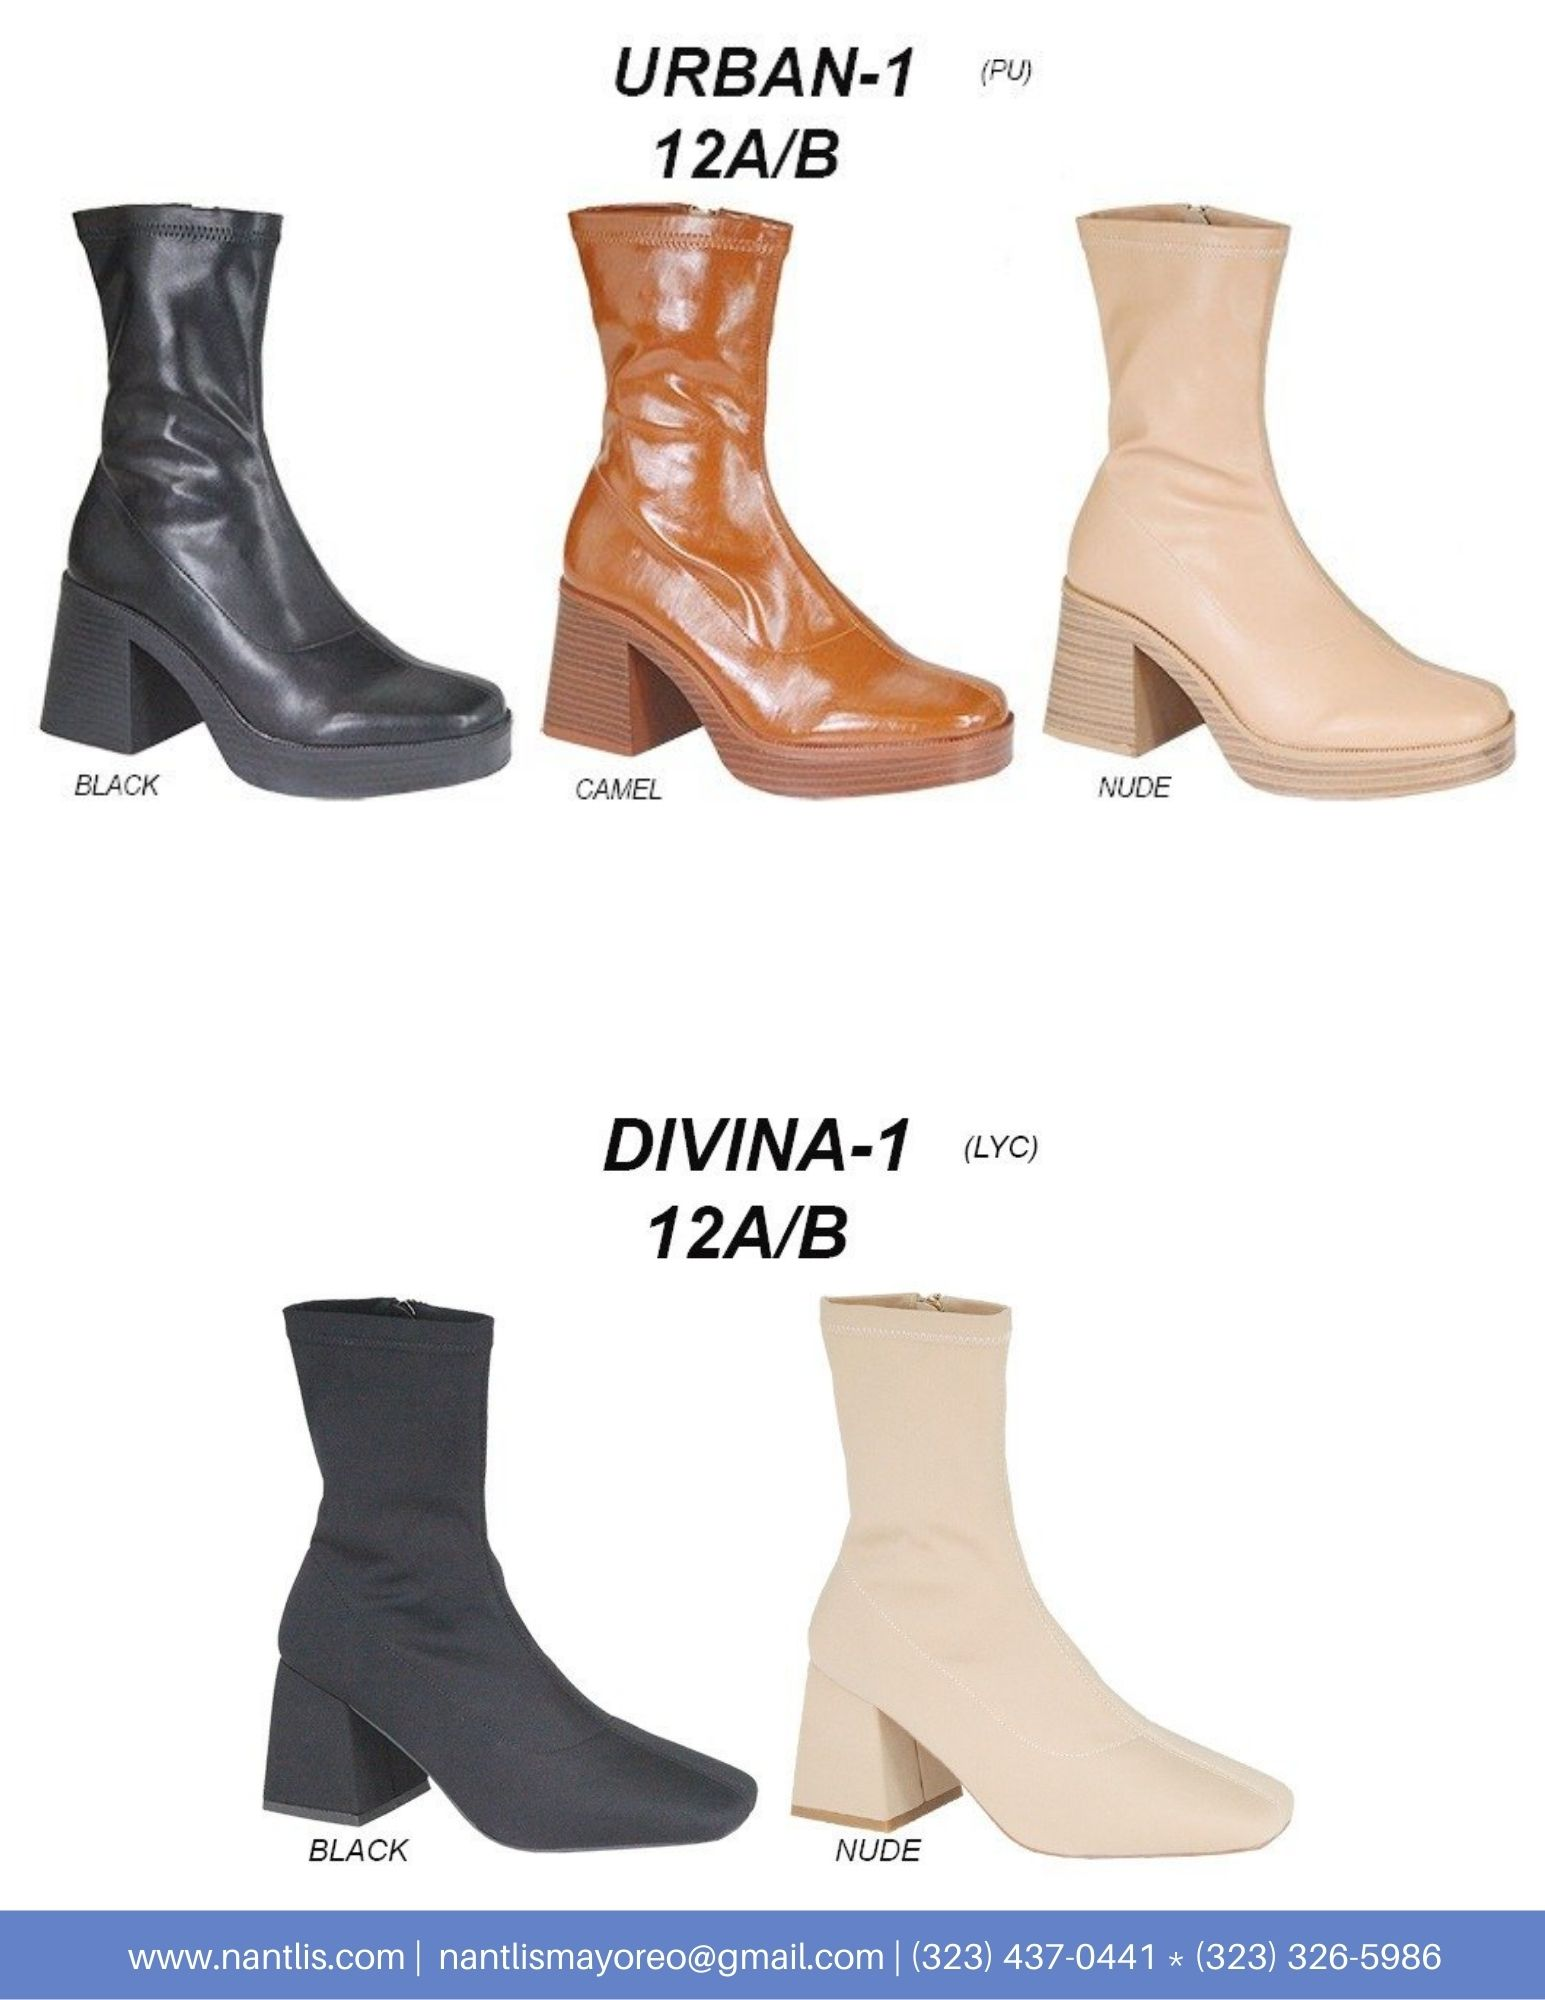 Nantlis Vol AN22 Botas Mujer mayoreo Catalogo Wholesale boots for women page 06